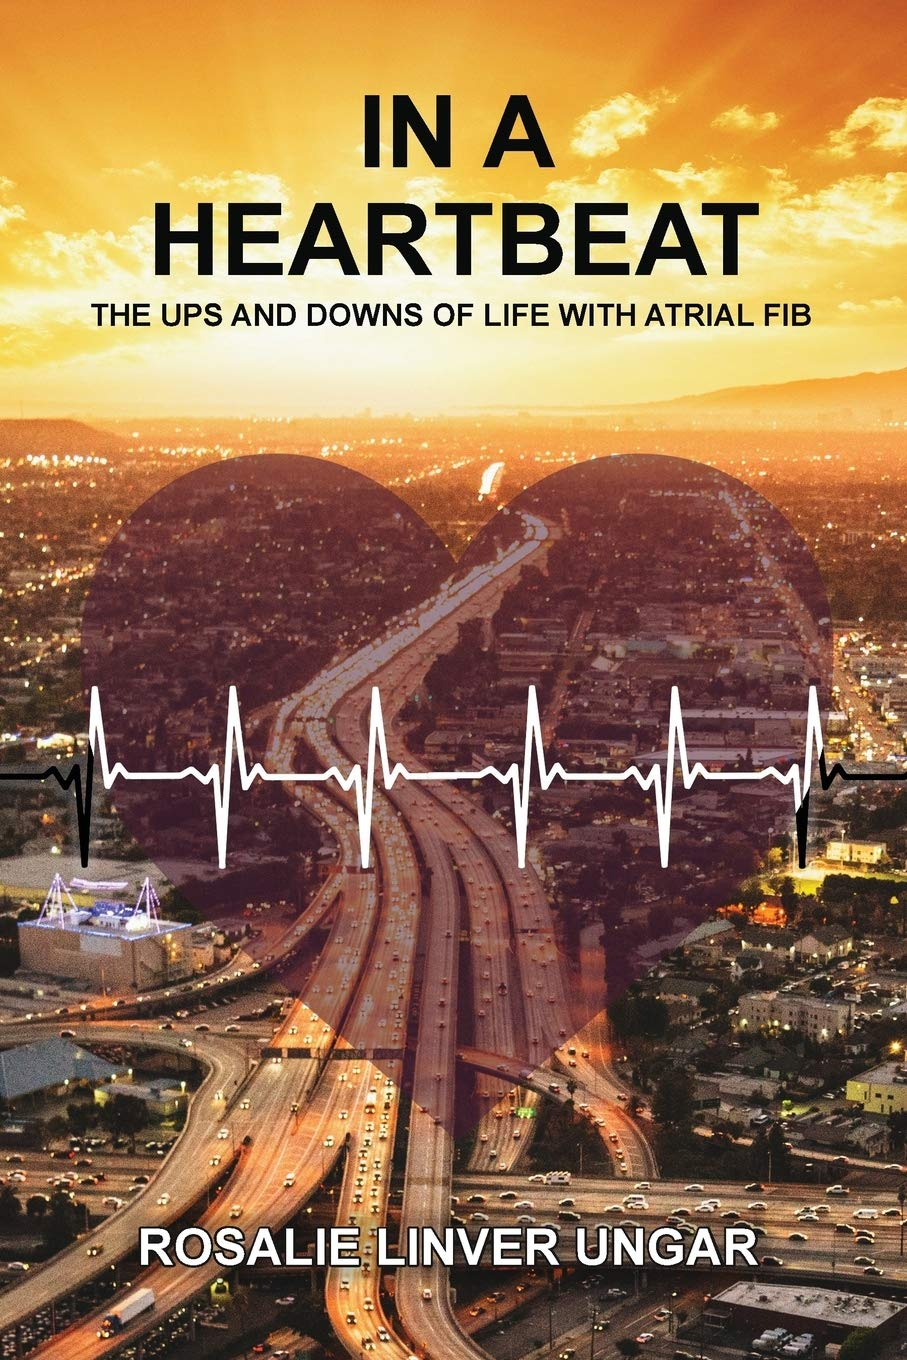 In A Heartbeat The Ups And Downs Of Life With Atrial Fib Ungar Rosalie 9781633371125 Amazon Com Books